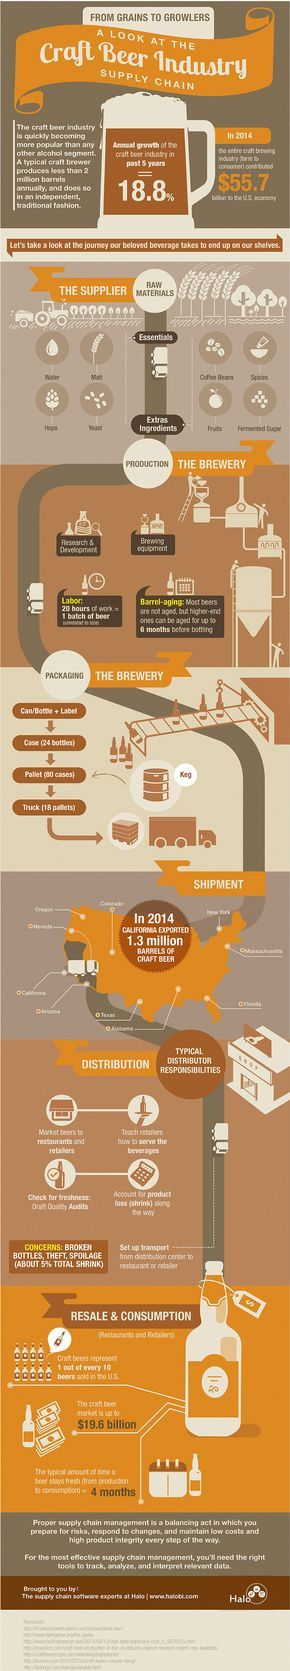 From #Grains to Growlers: A Look at the Craft #Beer #Industry Supply Chain - Do you fancy an infographic?  There are a lot of them online, but if you want your own please visit http://www.linfografico.com/prezzi/  Online girano molte infografiche, se ne vuoi realizzare una tutta tua visita http://www.linfografico.com/prezzi/